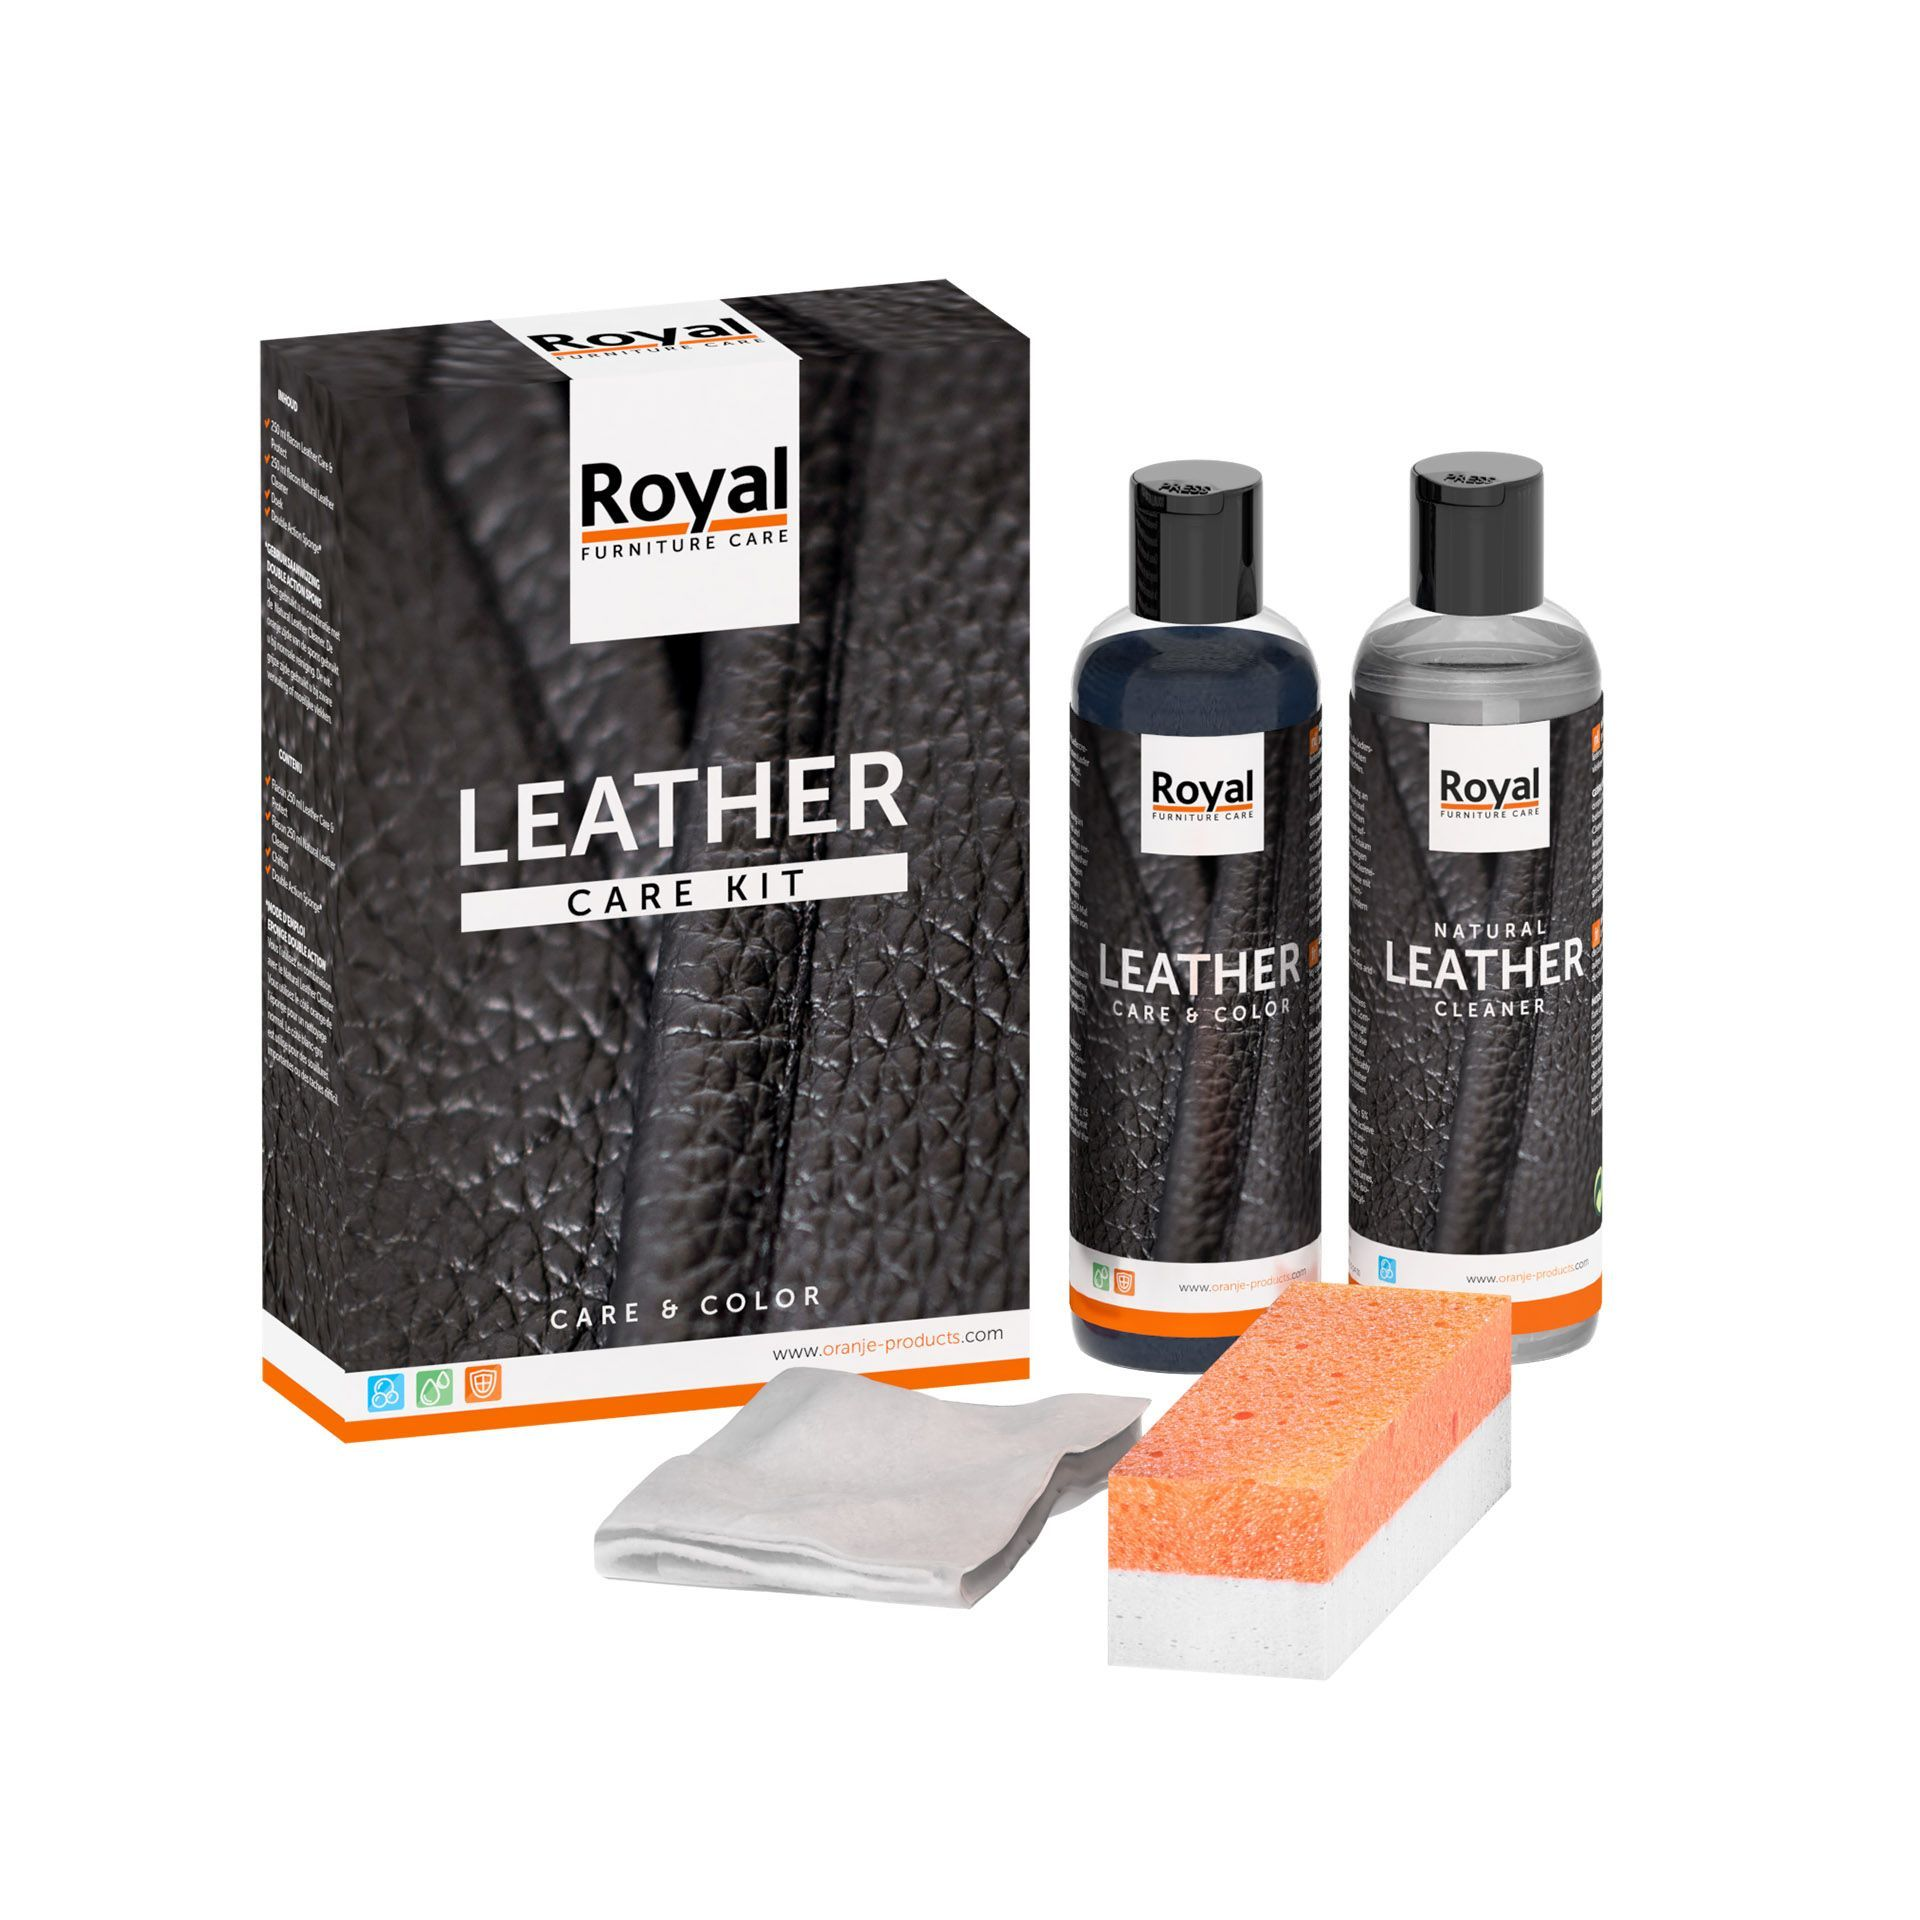 Leather Care Kit - Care & Protect